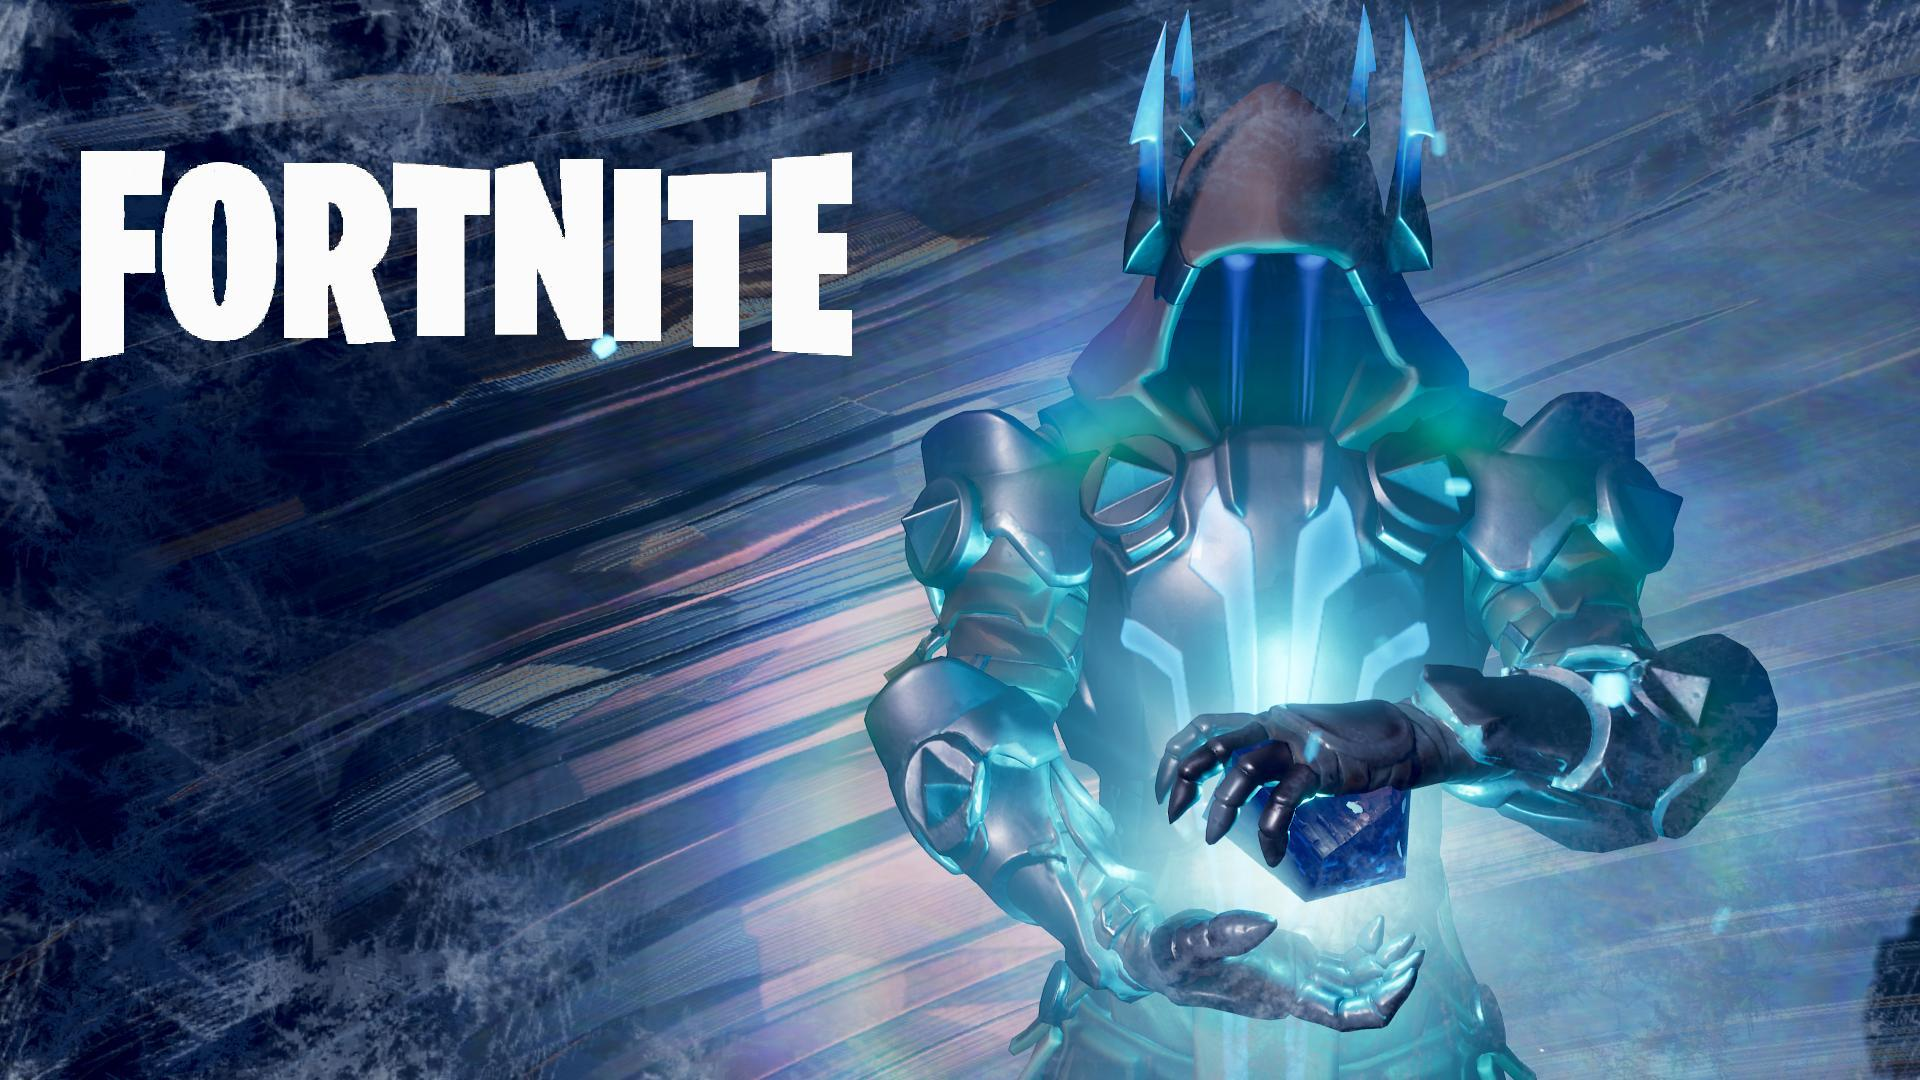 Fortnite Ice King Event Wallpapers I made with Replay Mode.